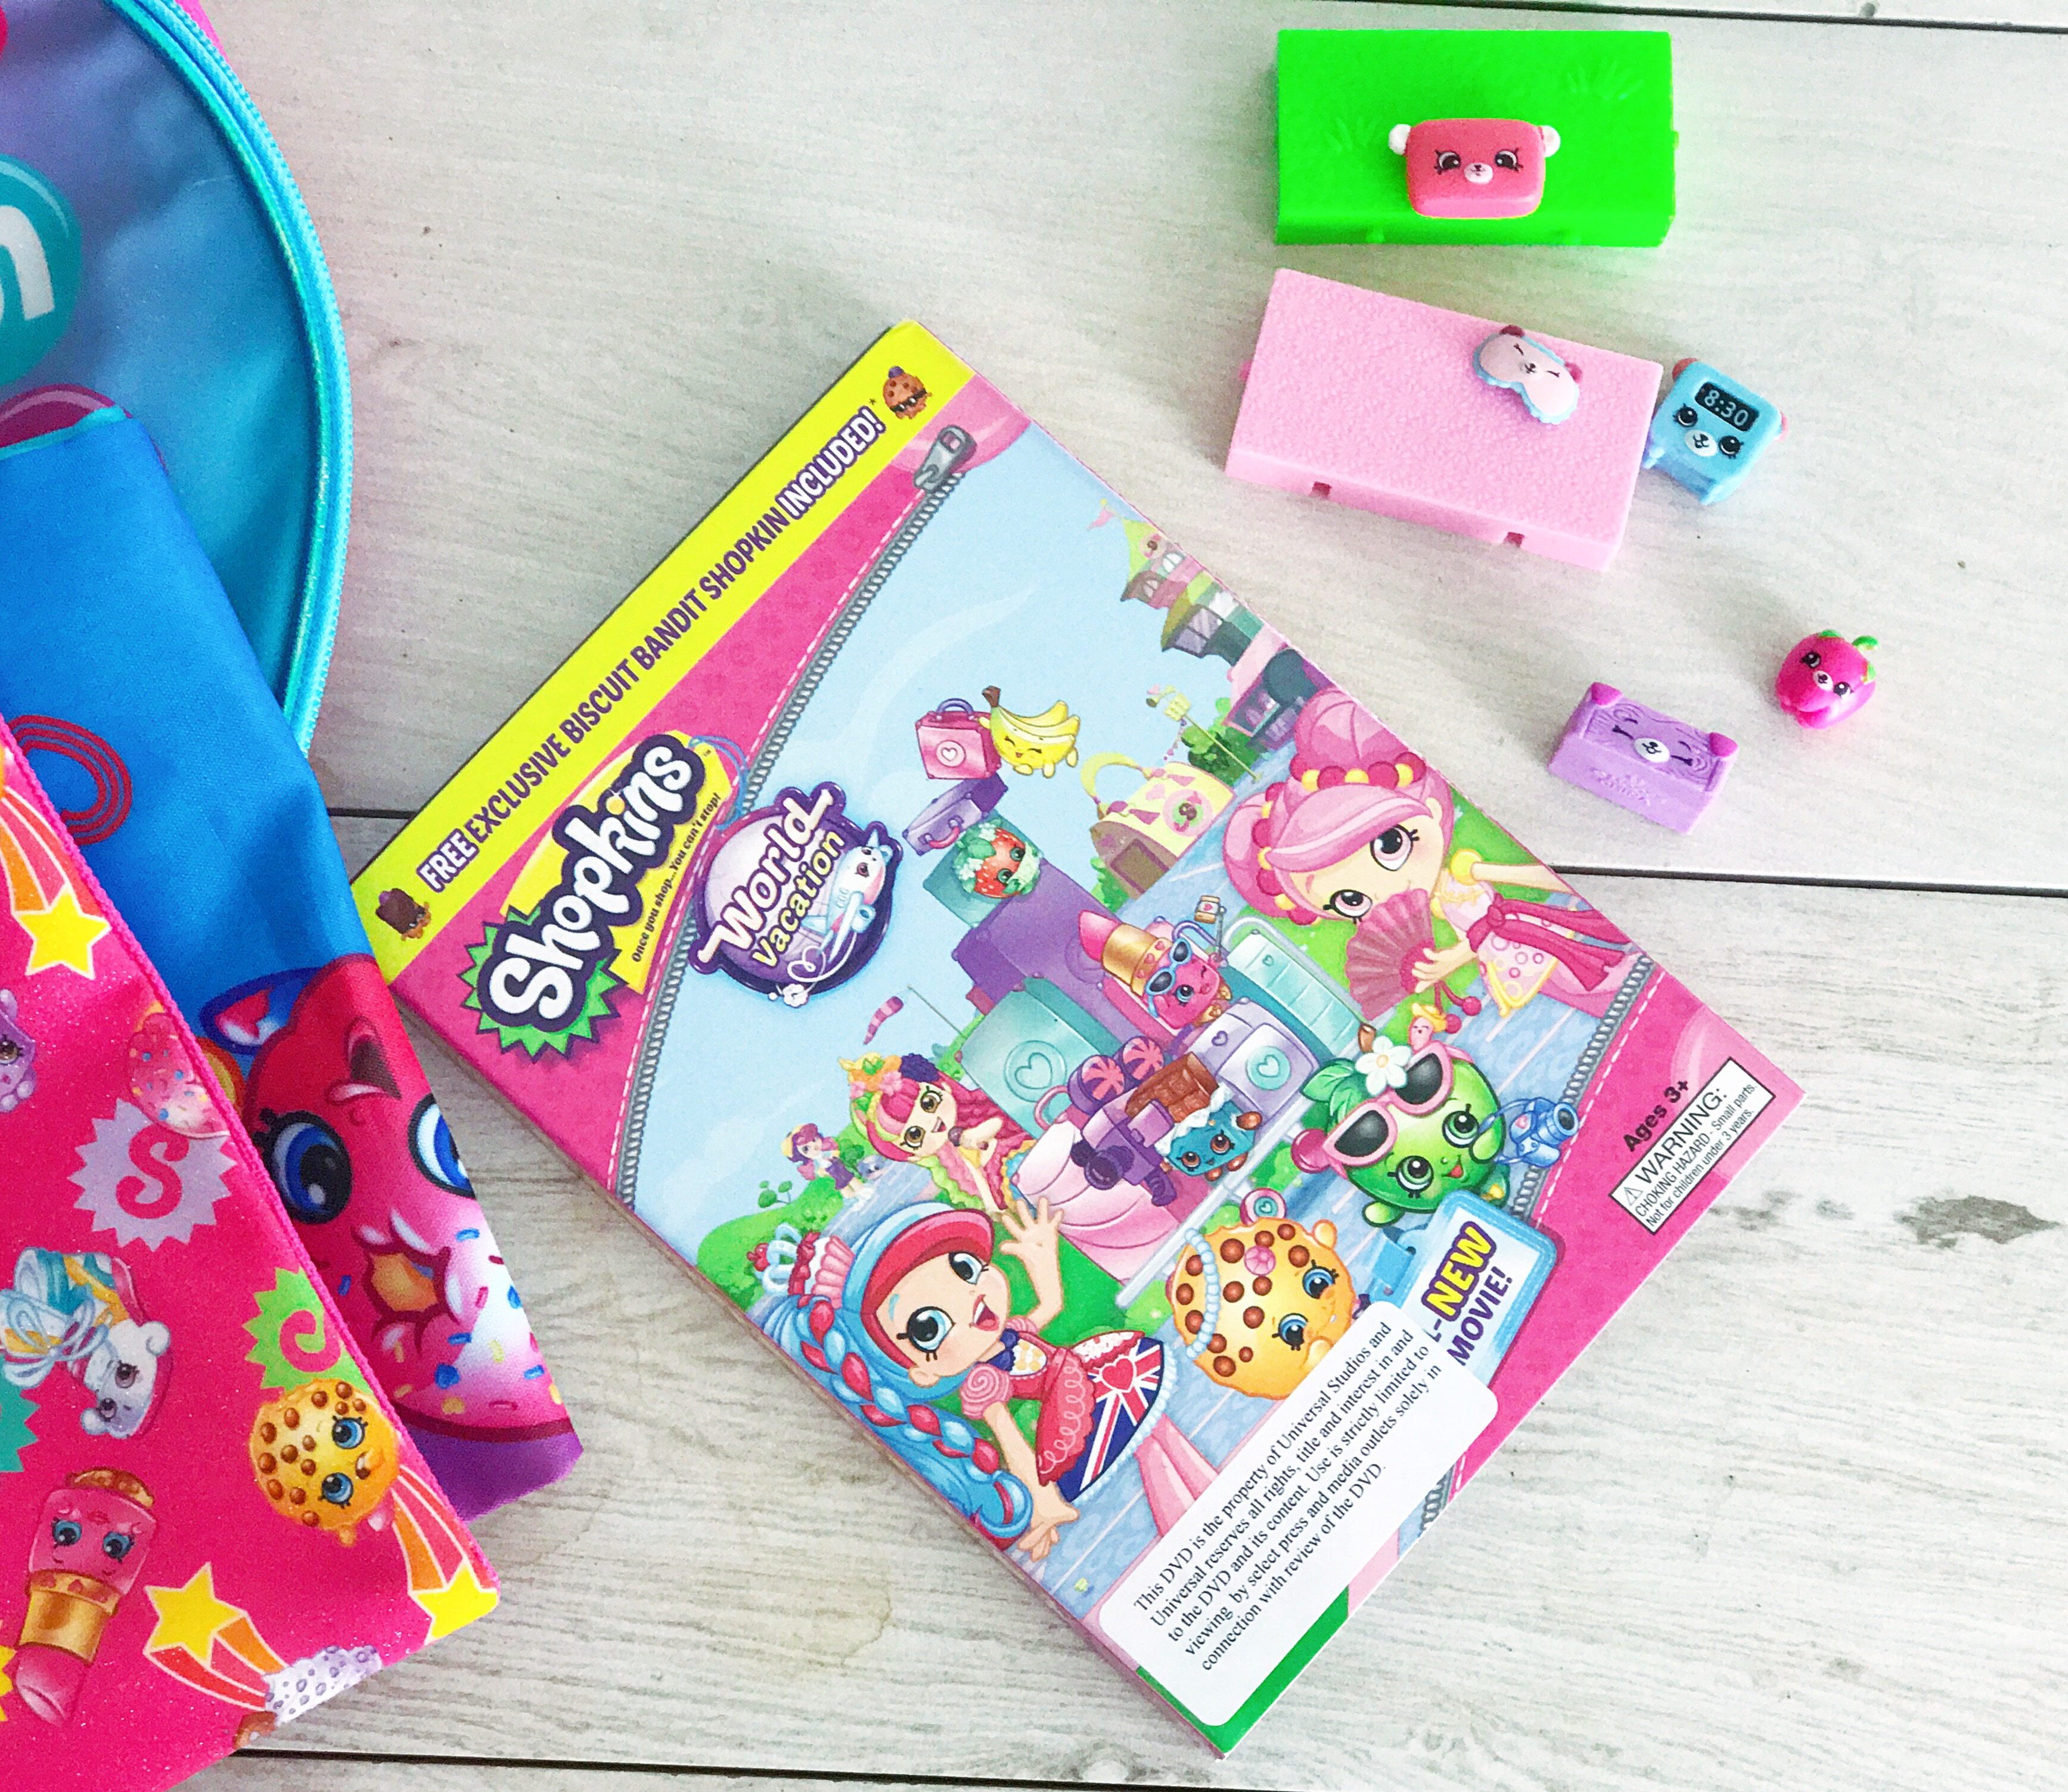 Shopkins World Vacation Party To Celebrate The DVD Movie Premiere